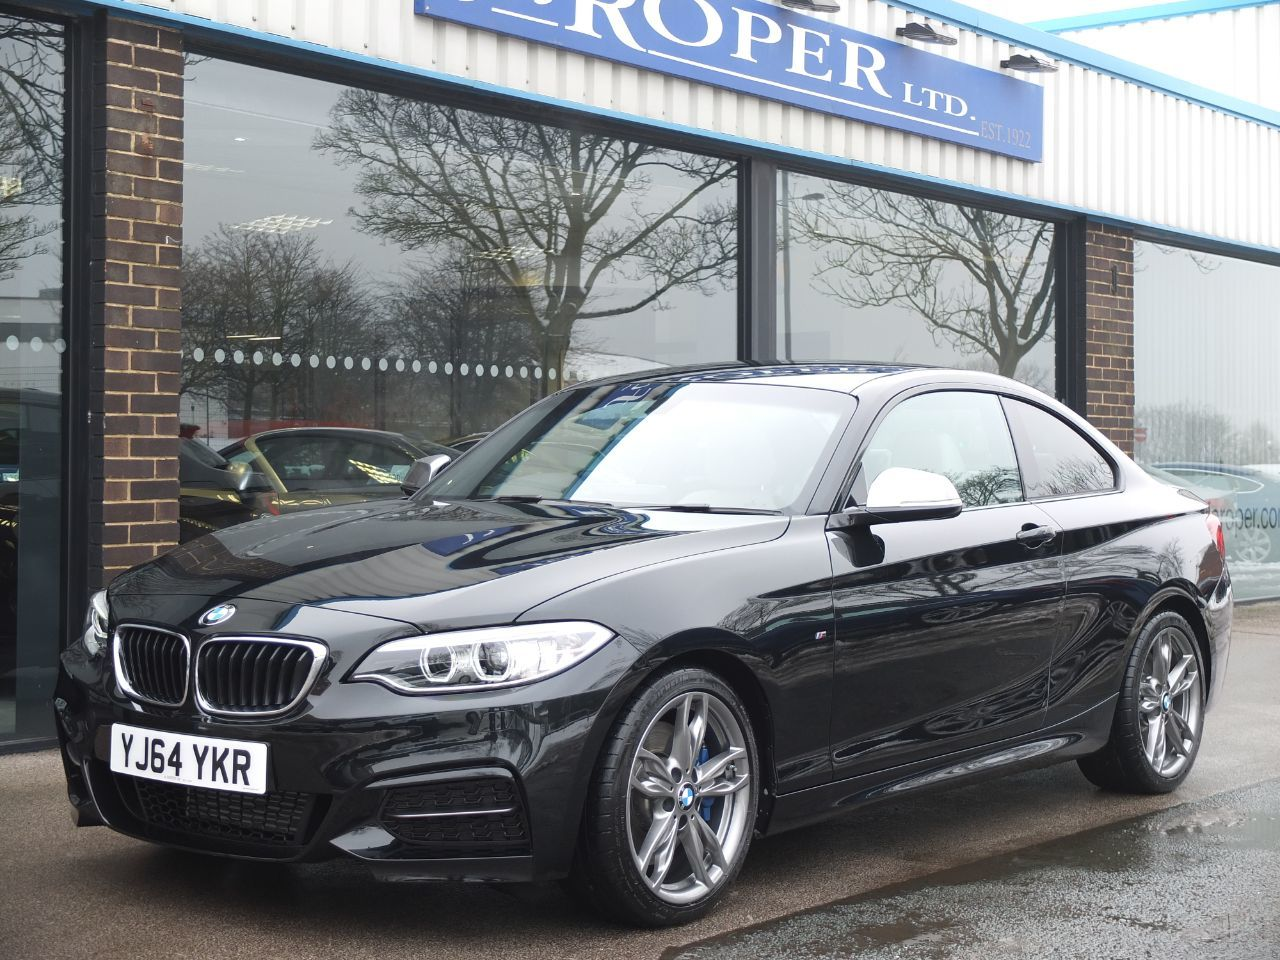 BMW 2 Series 3.0 M235i Coupe Sports Auto +++Spec Coupe Petrol Black Sapphire MetallicBMW 2 Series 3.0 M235i Coupe Sports Auto +++Spec Coupe Petrol Black Sapphire Metallic at fa Roper Ltd Bradford